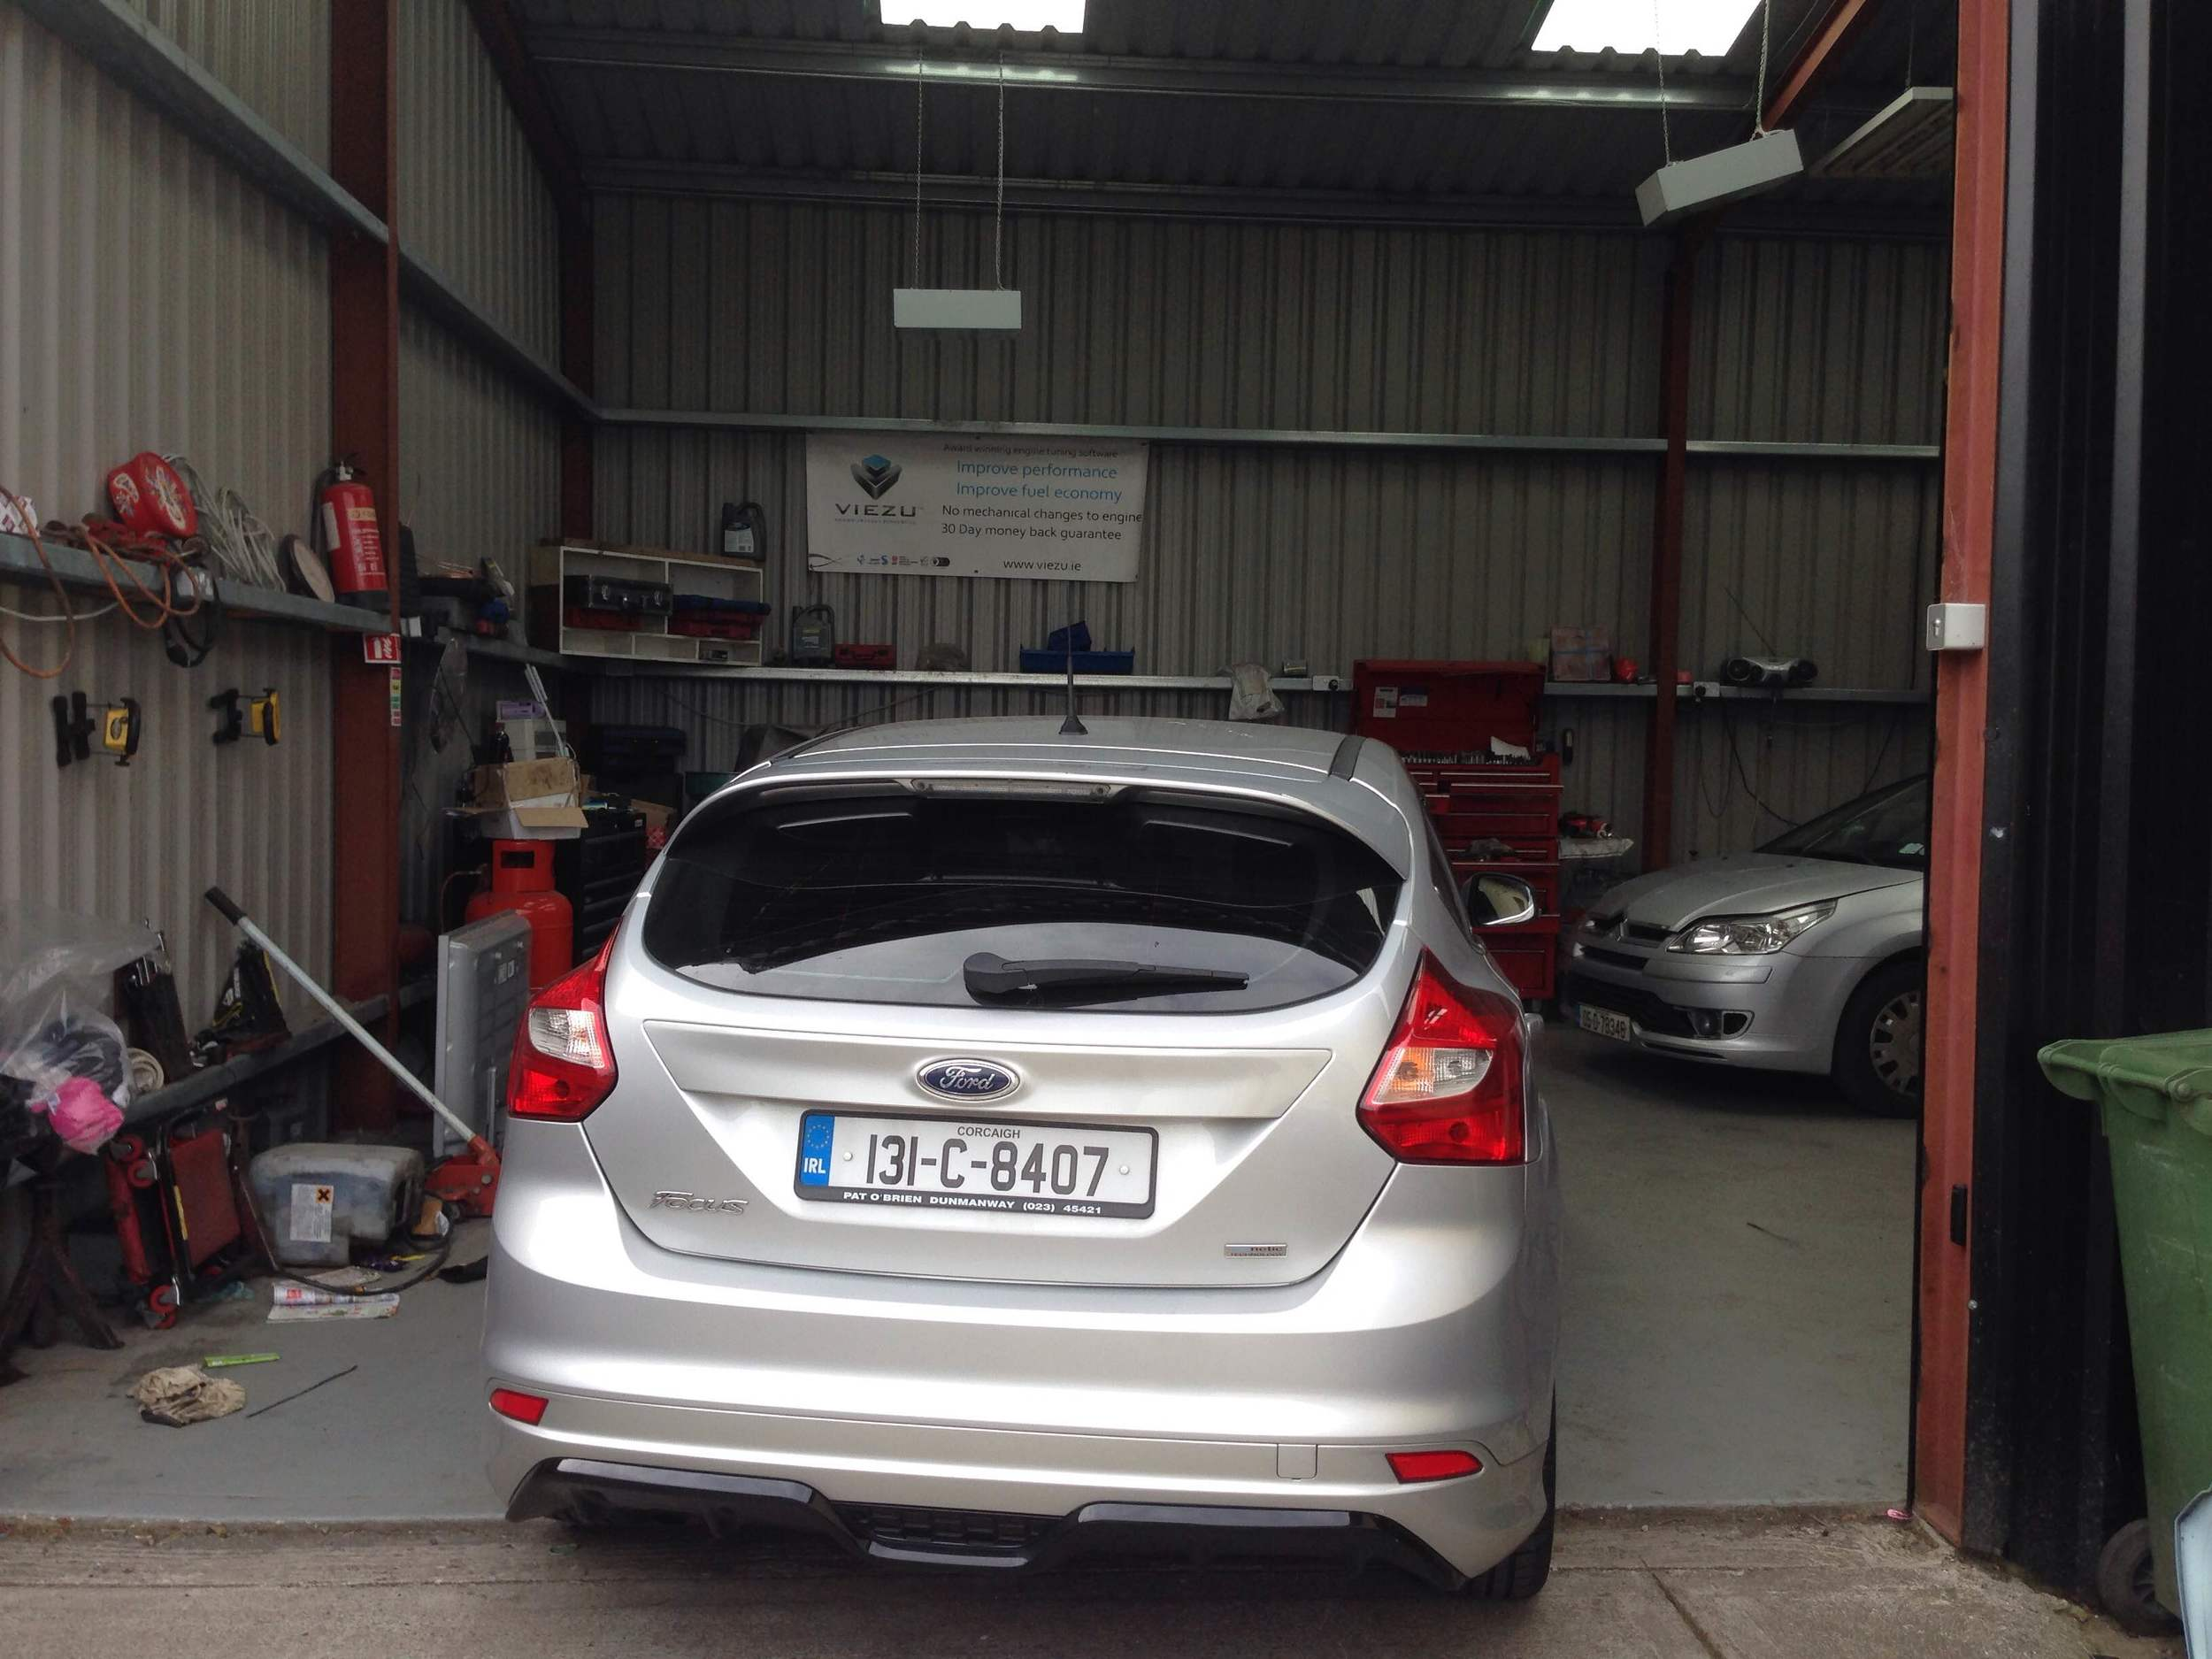 ecu remap ford focus 1.6 viezu.JPG